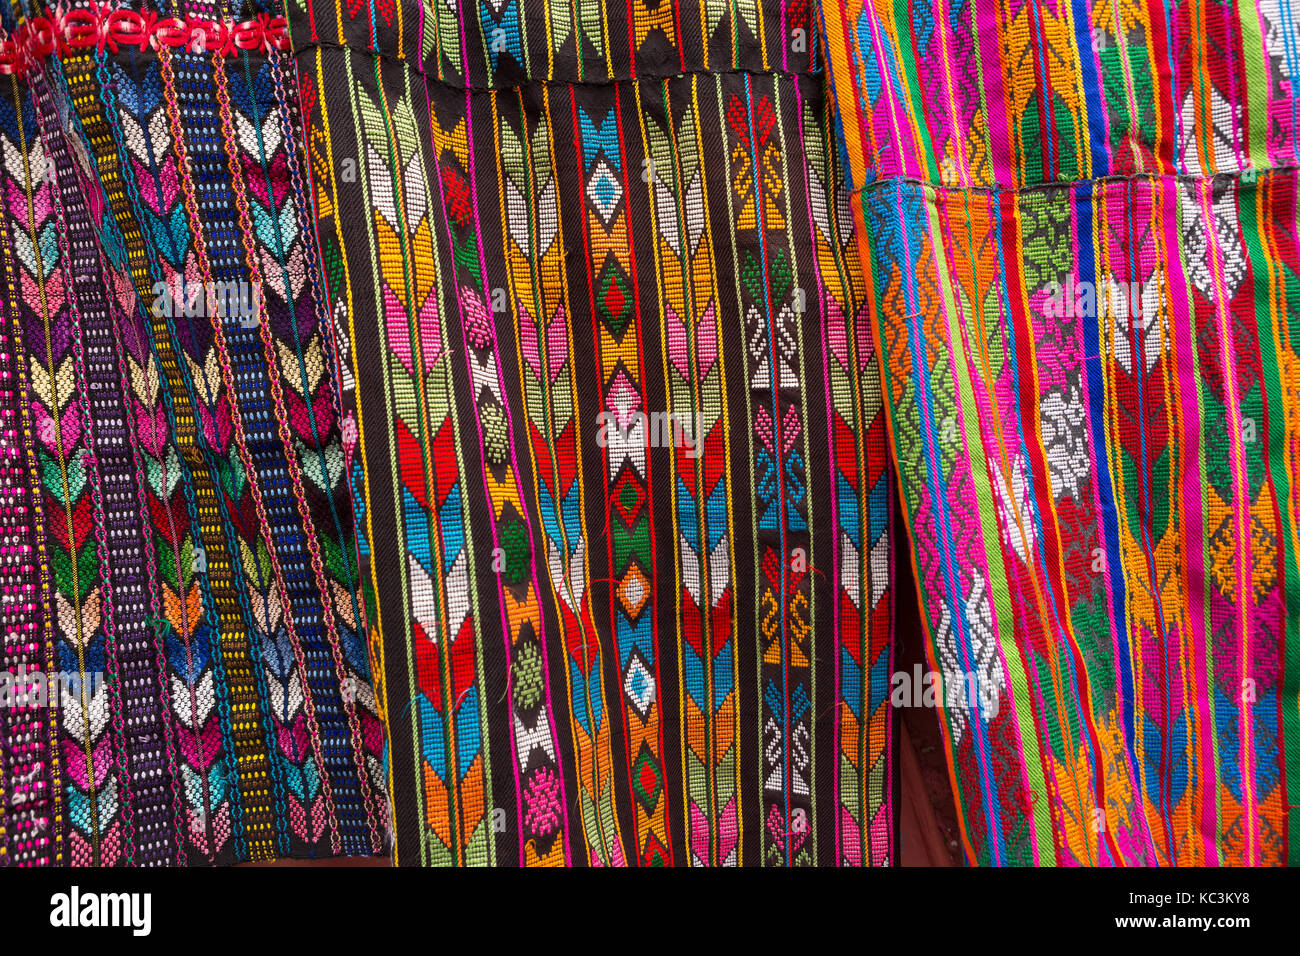 February 5, 2016 Chichicastenango, Guatemala: illustrative editorial closeup details of mayan traditional textile - Stock Image